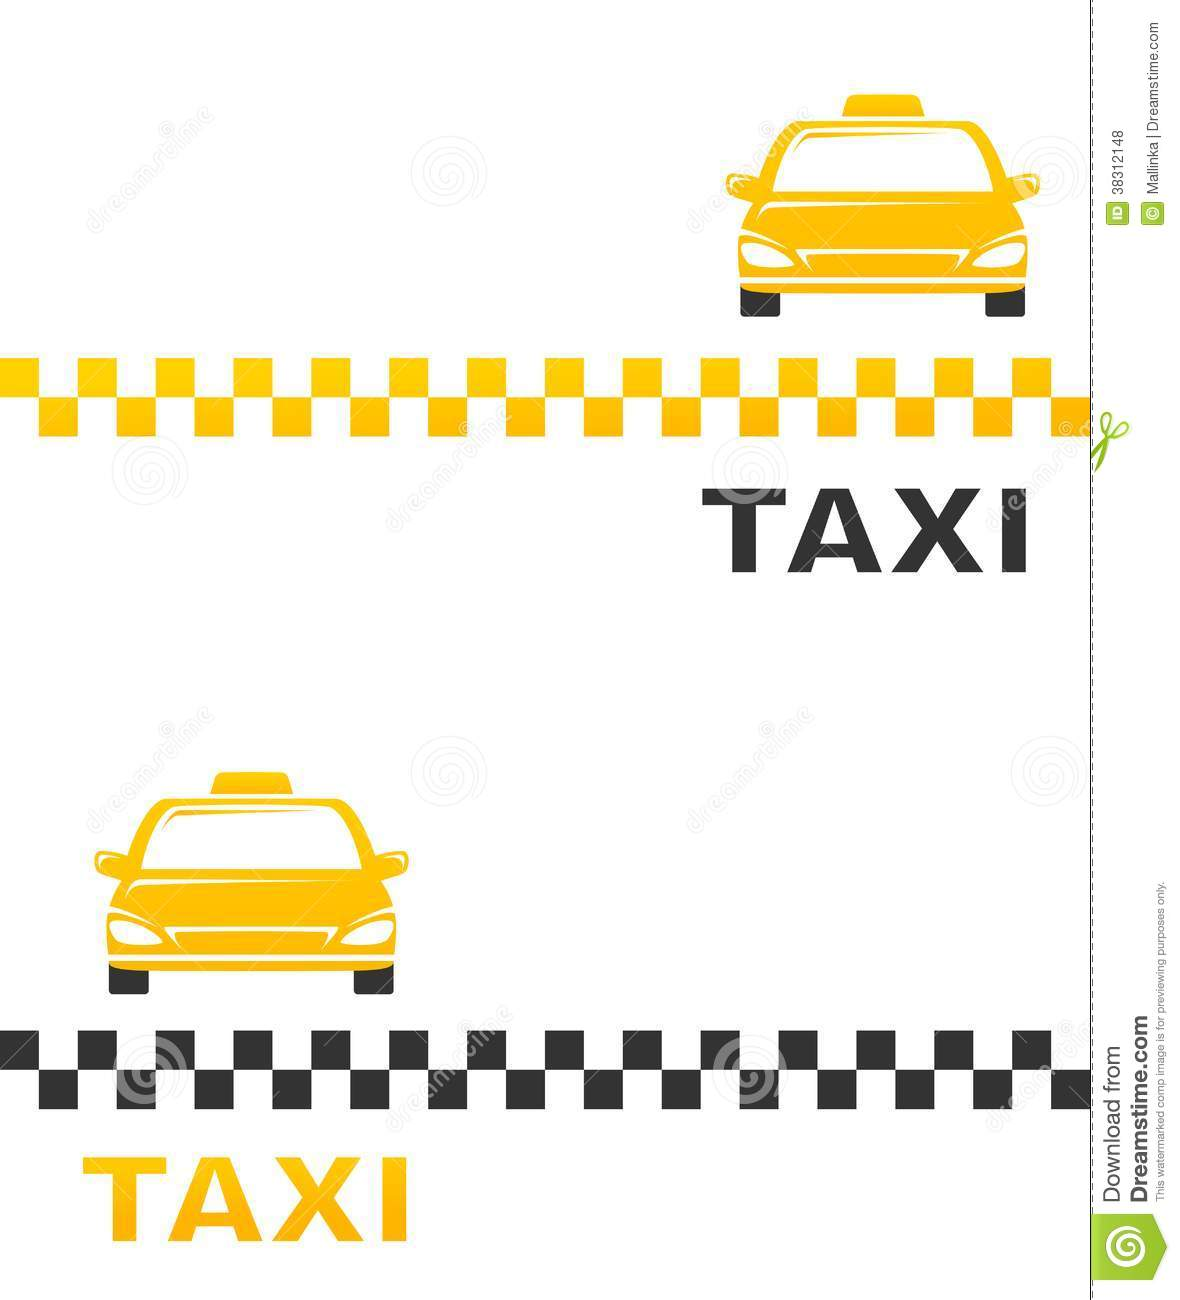 How To Create A Taxi Business Plan That Will Work For You